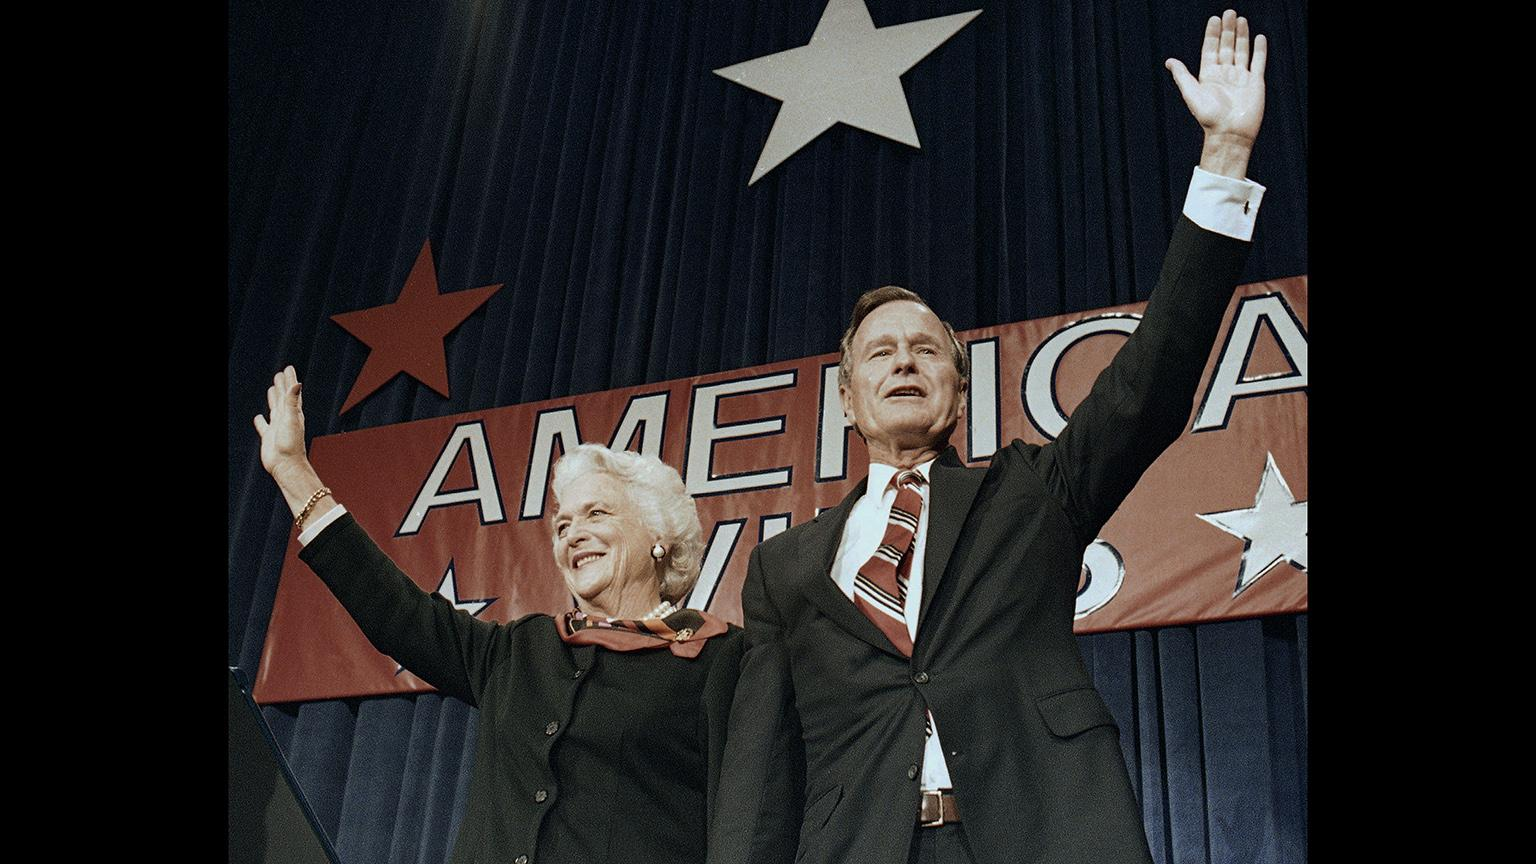 In this Nov. 8, 1988 file photo, President-elect George H.W. Bush and his wife Barbara wave to supporters in Houston, Texas after winning the presidential election. (AP Photo / Scott Applewhite, File)